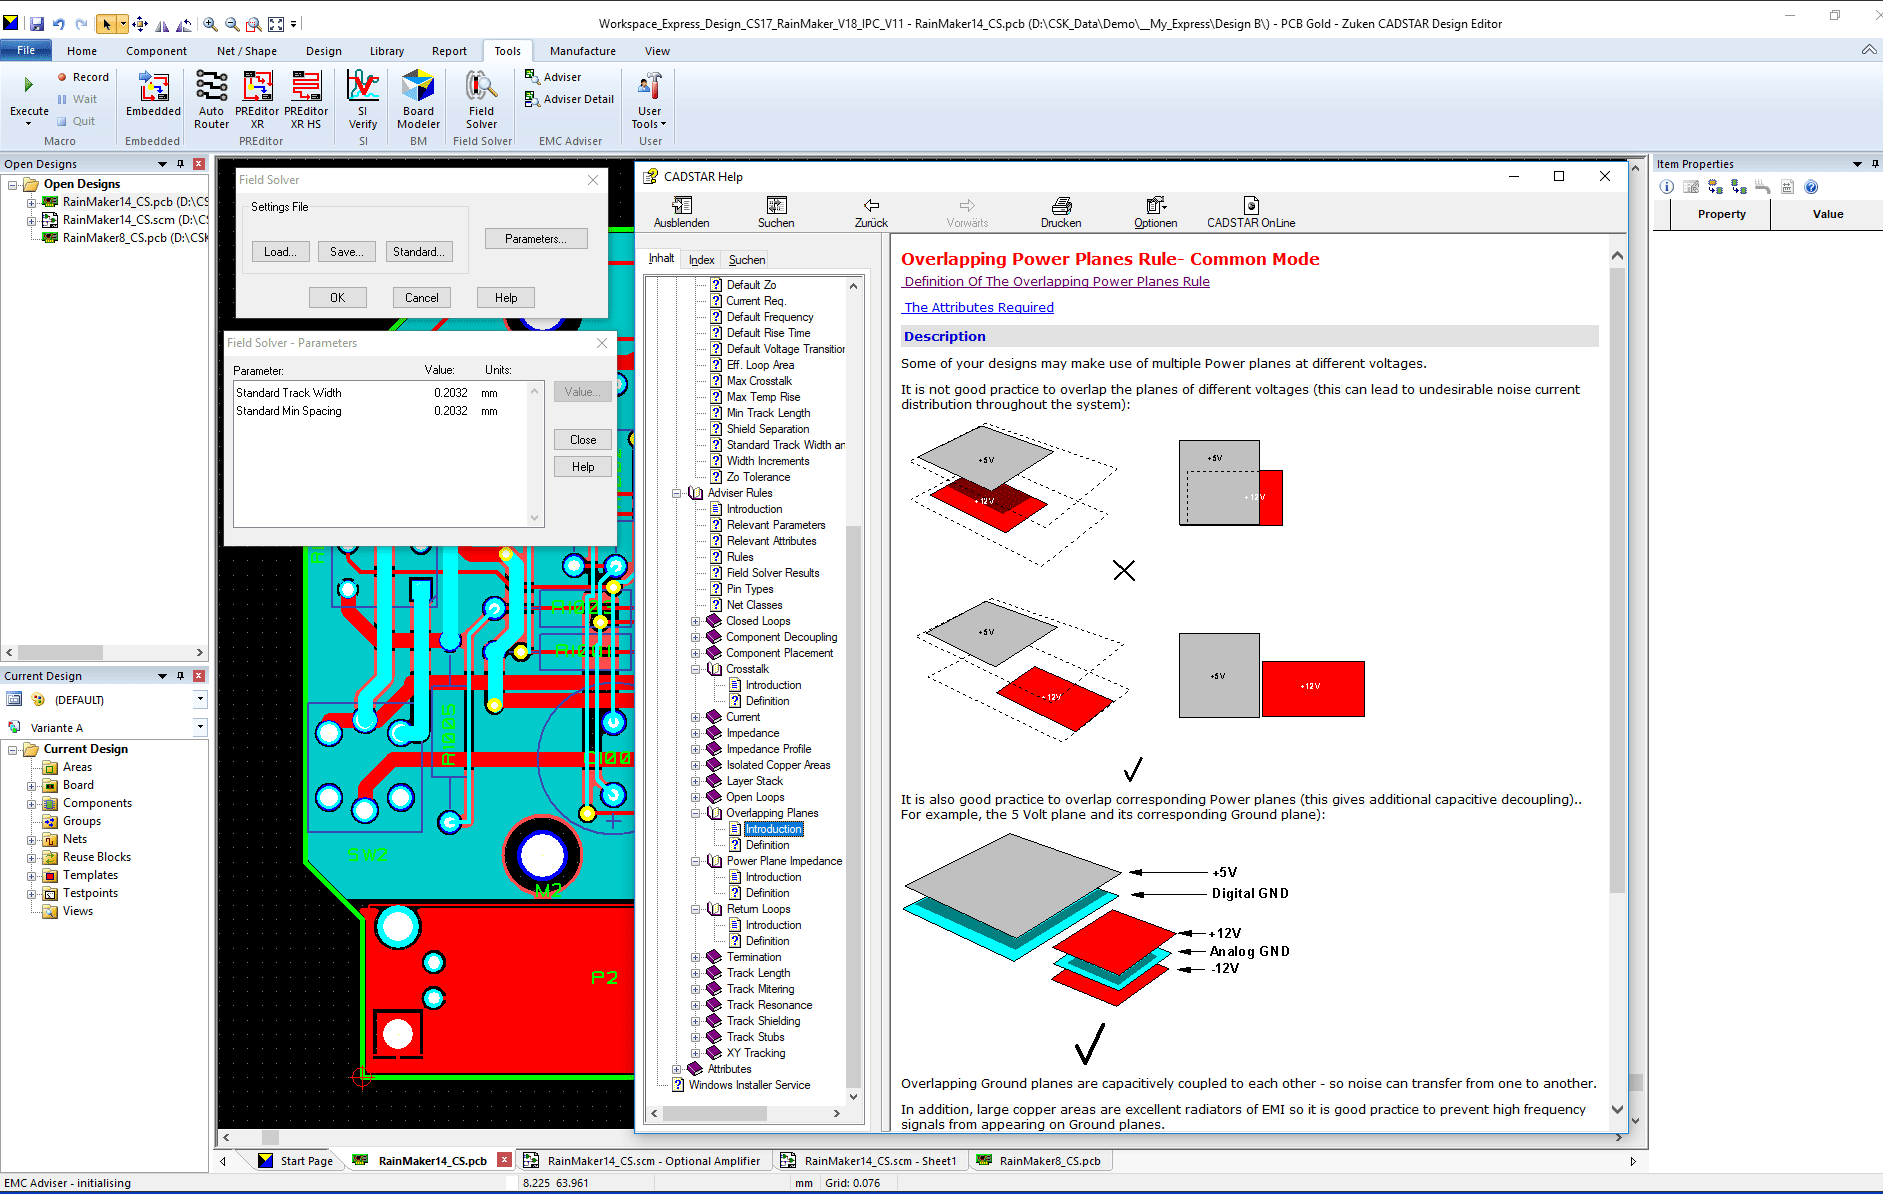 pcb design software CADSTAR EMC Adviser rule overlapping power planes